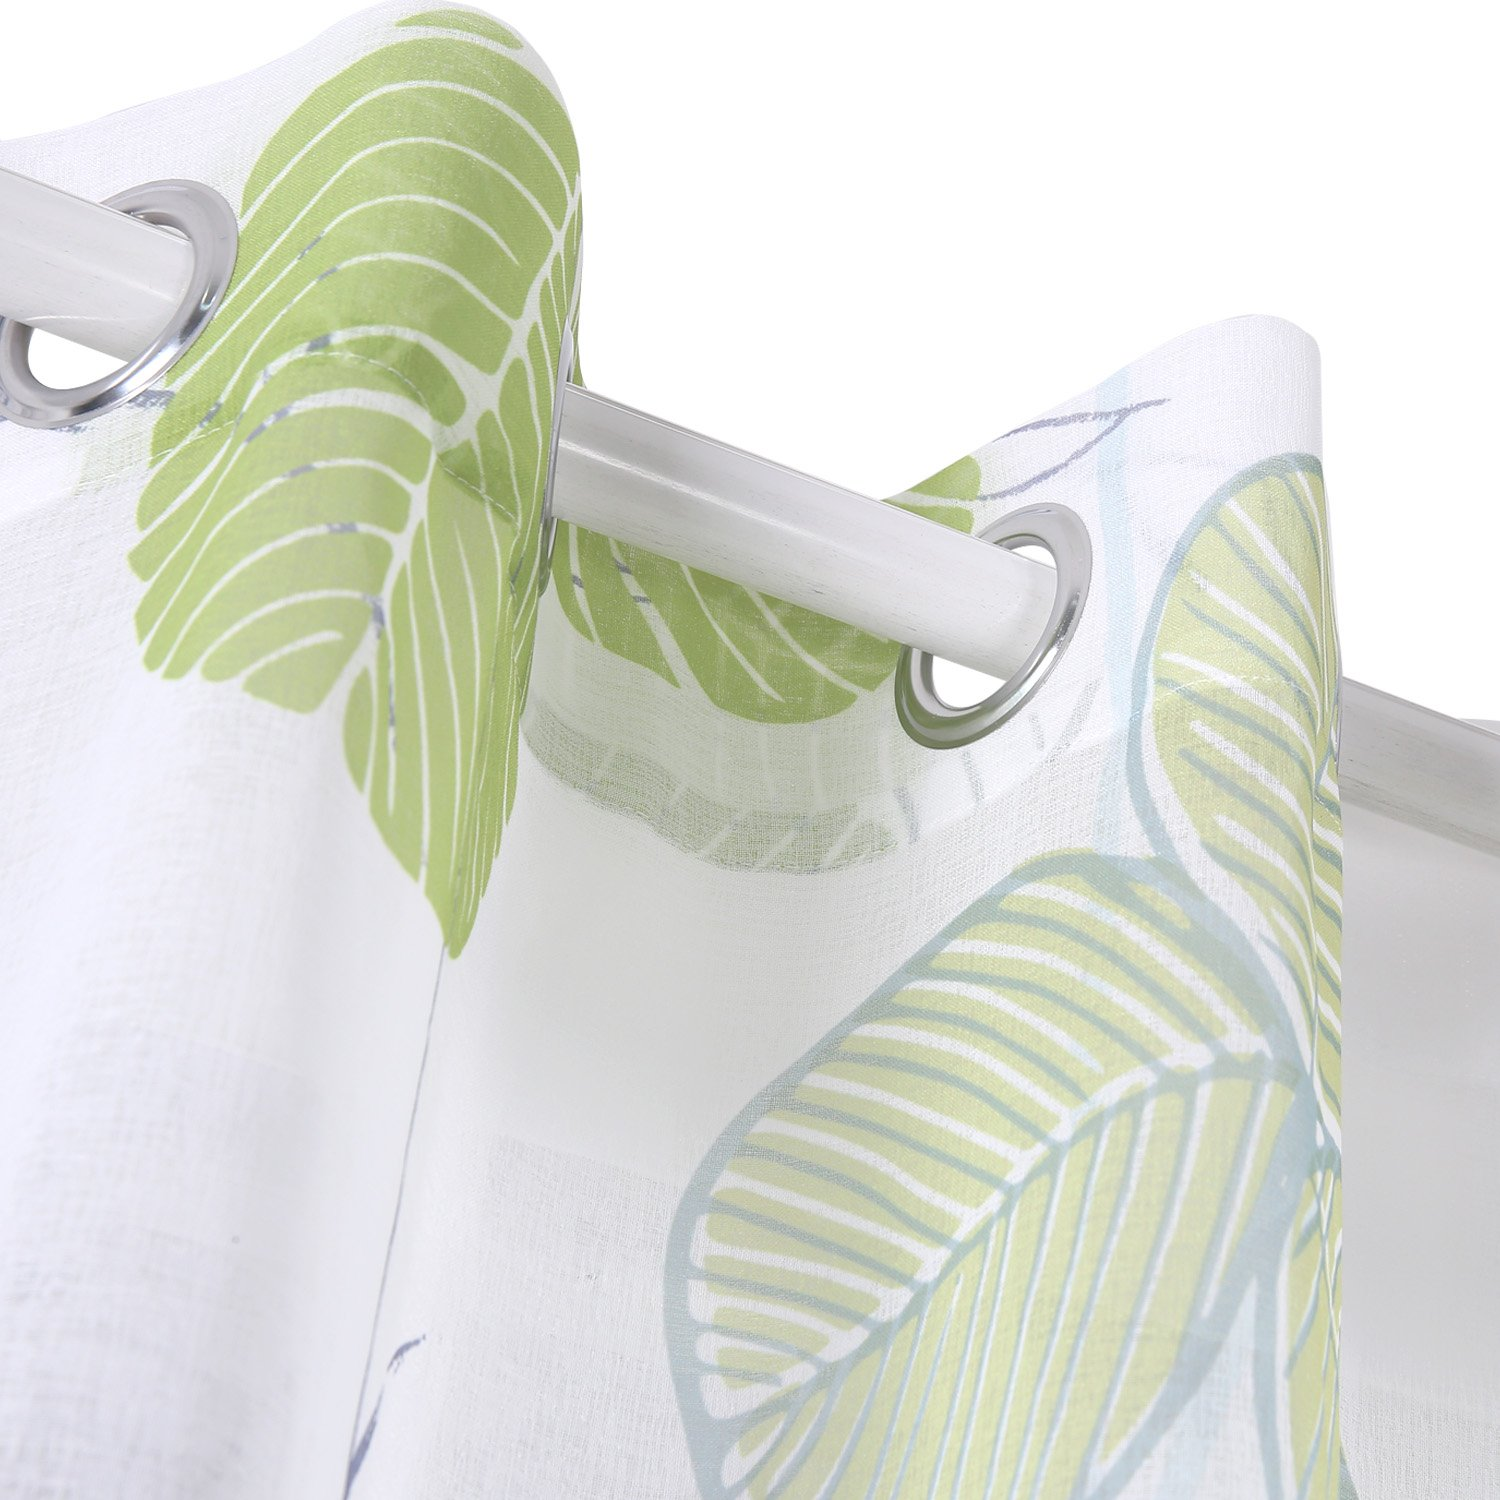 Green Deconovo Sheer Curtain with Leaves Clover Sheer Print Window Curtains Sheer Linen Curtains